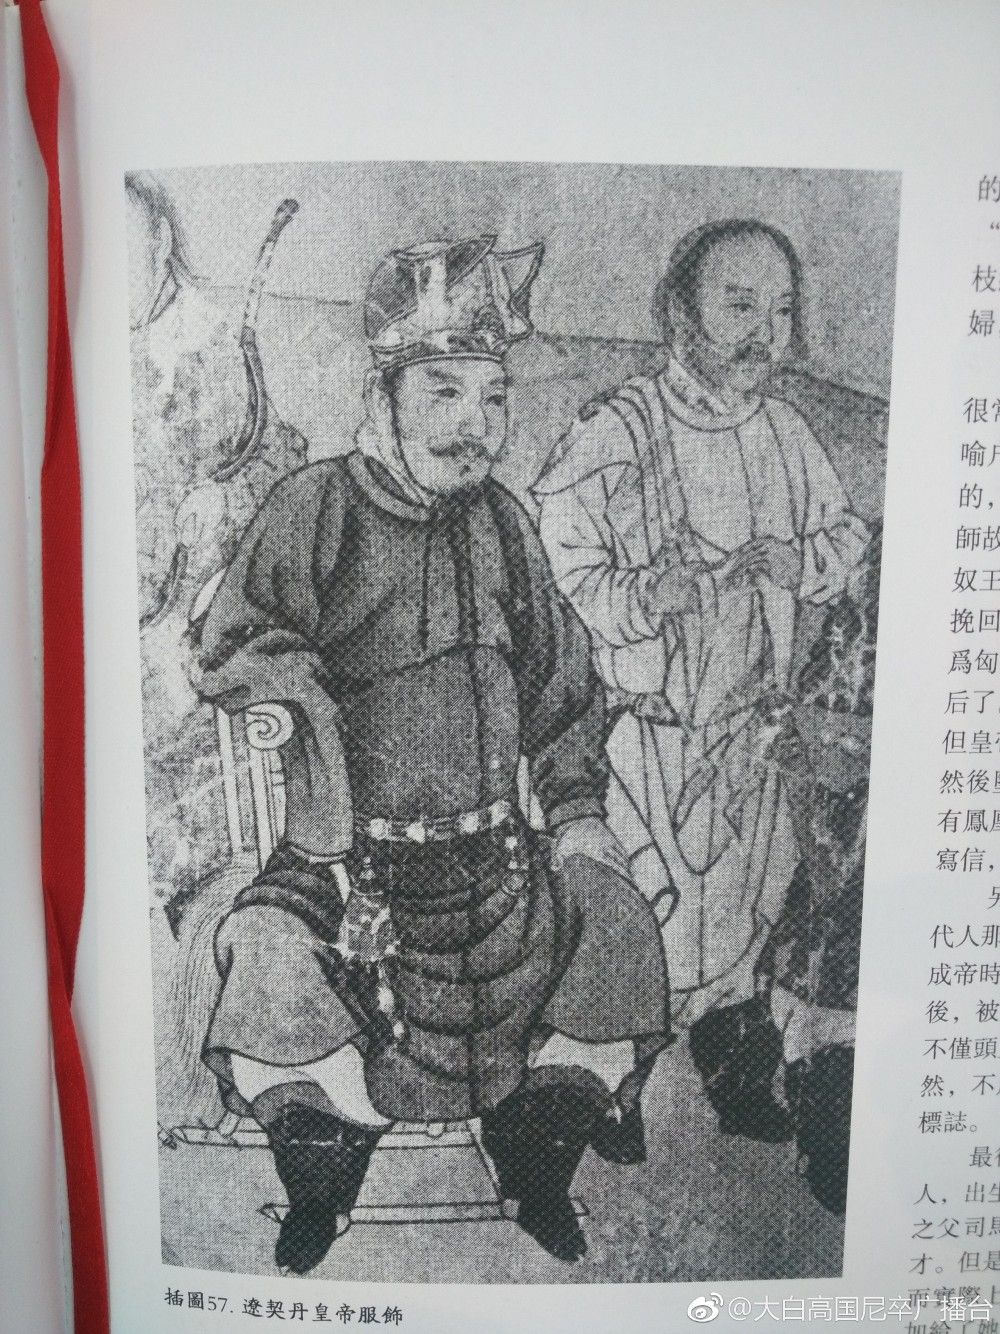 Liao dynasty Emperor Hunting painting in 2020 Hunting